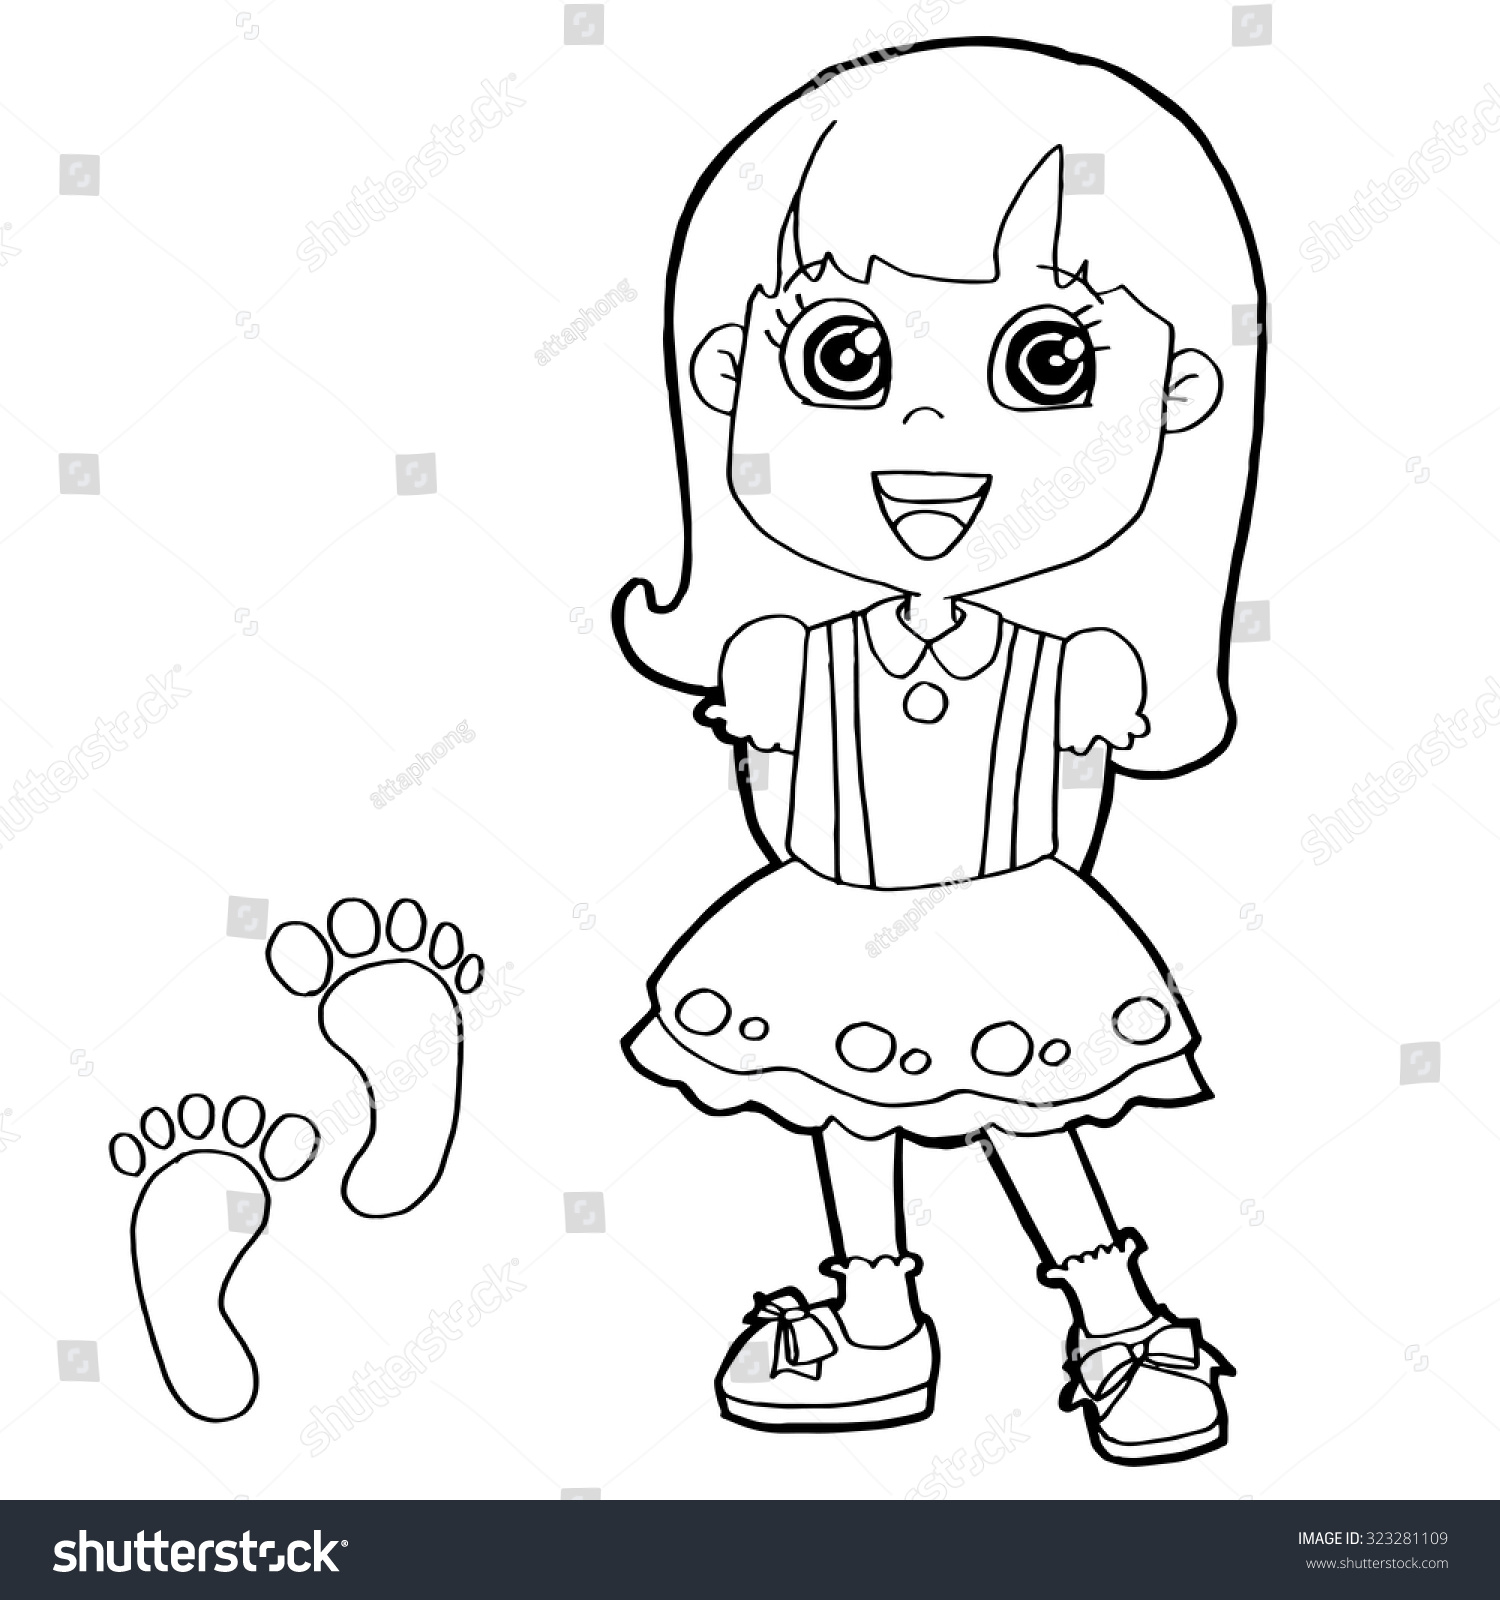 Kid Paw Print Coloring Page Vector Stock Vector 323281109 - Shutterstock